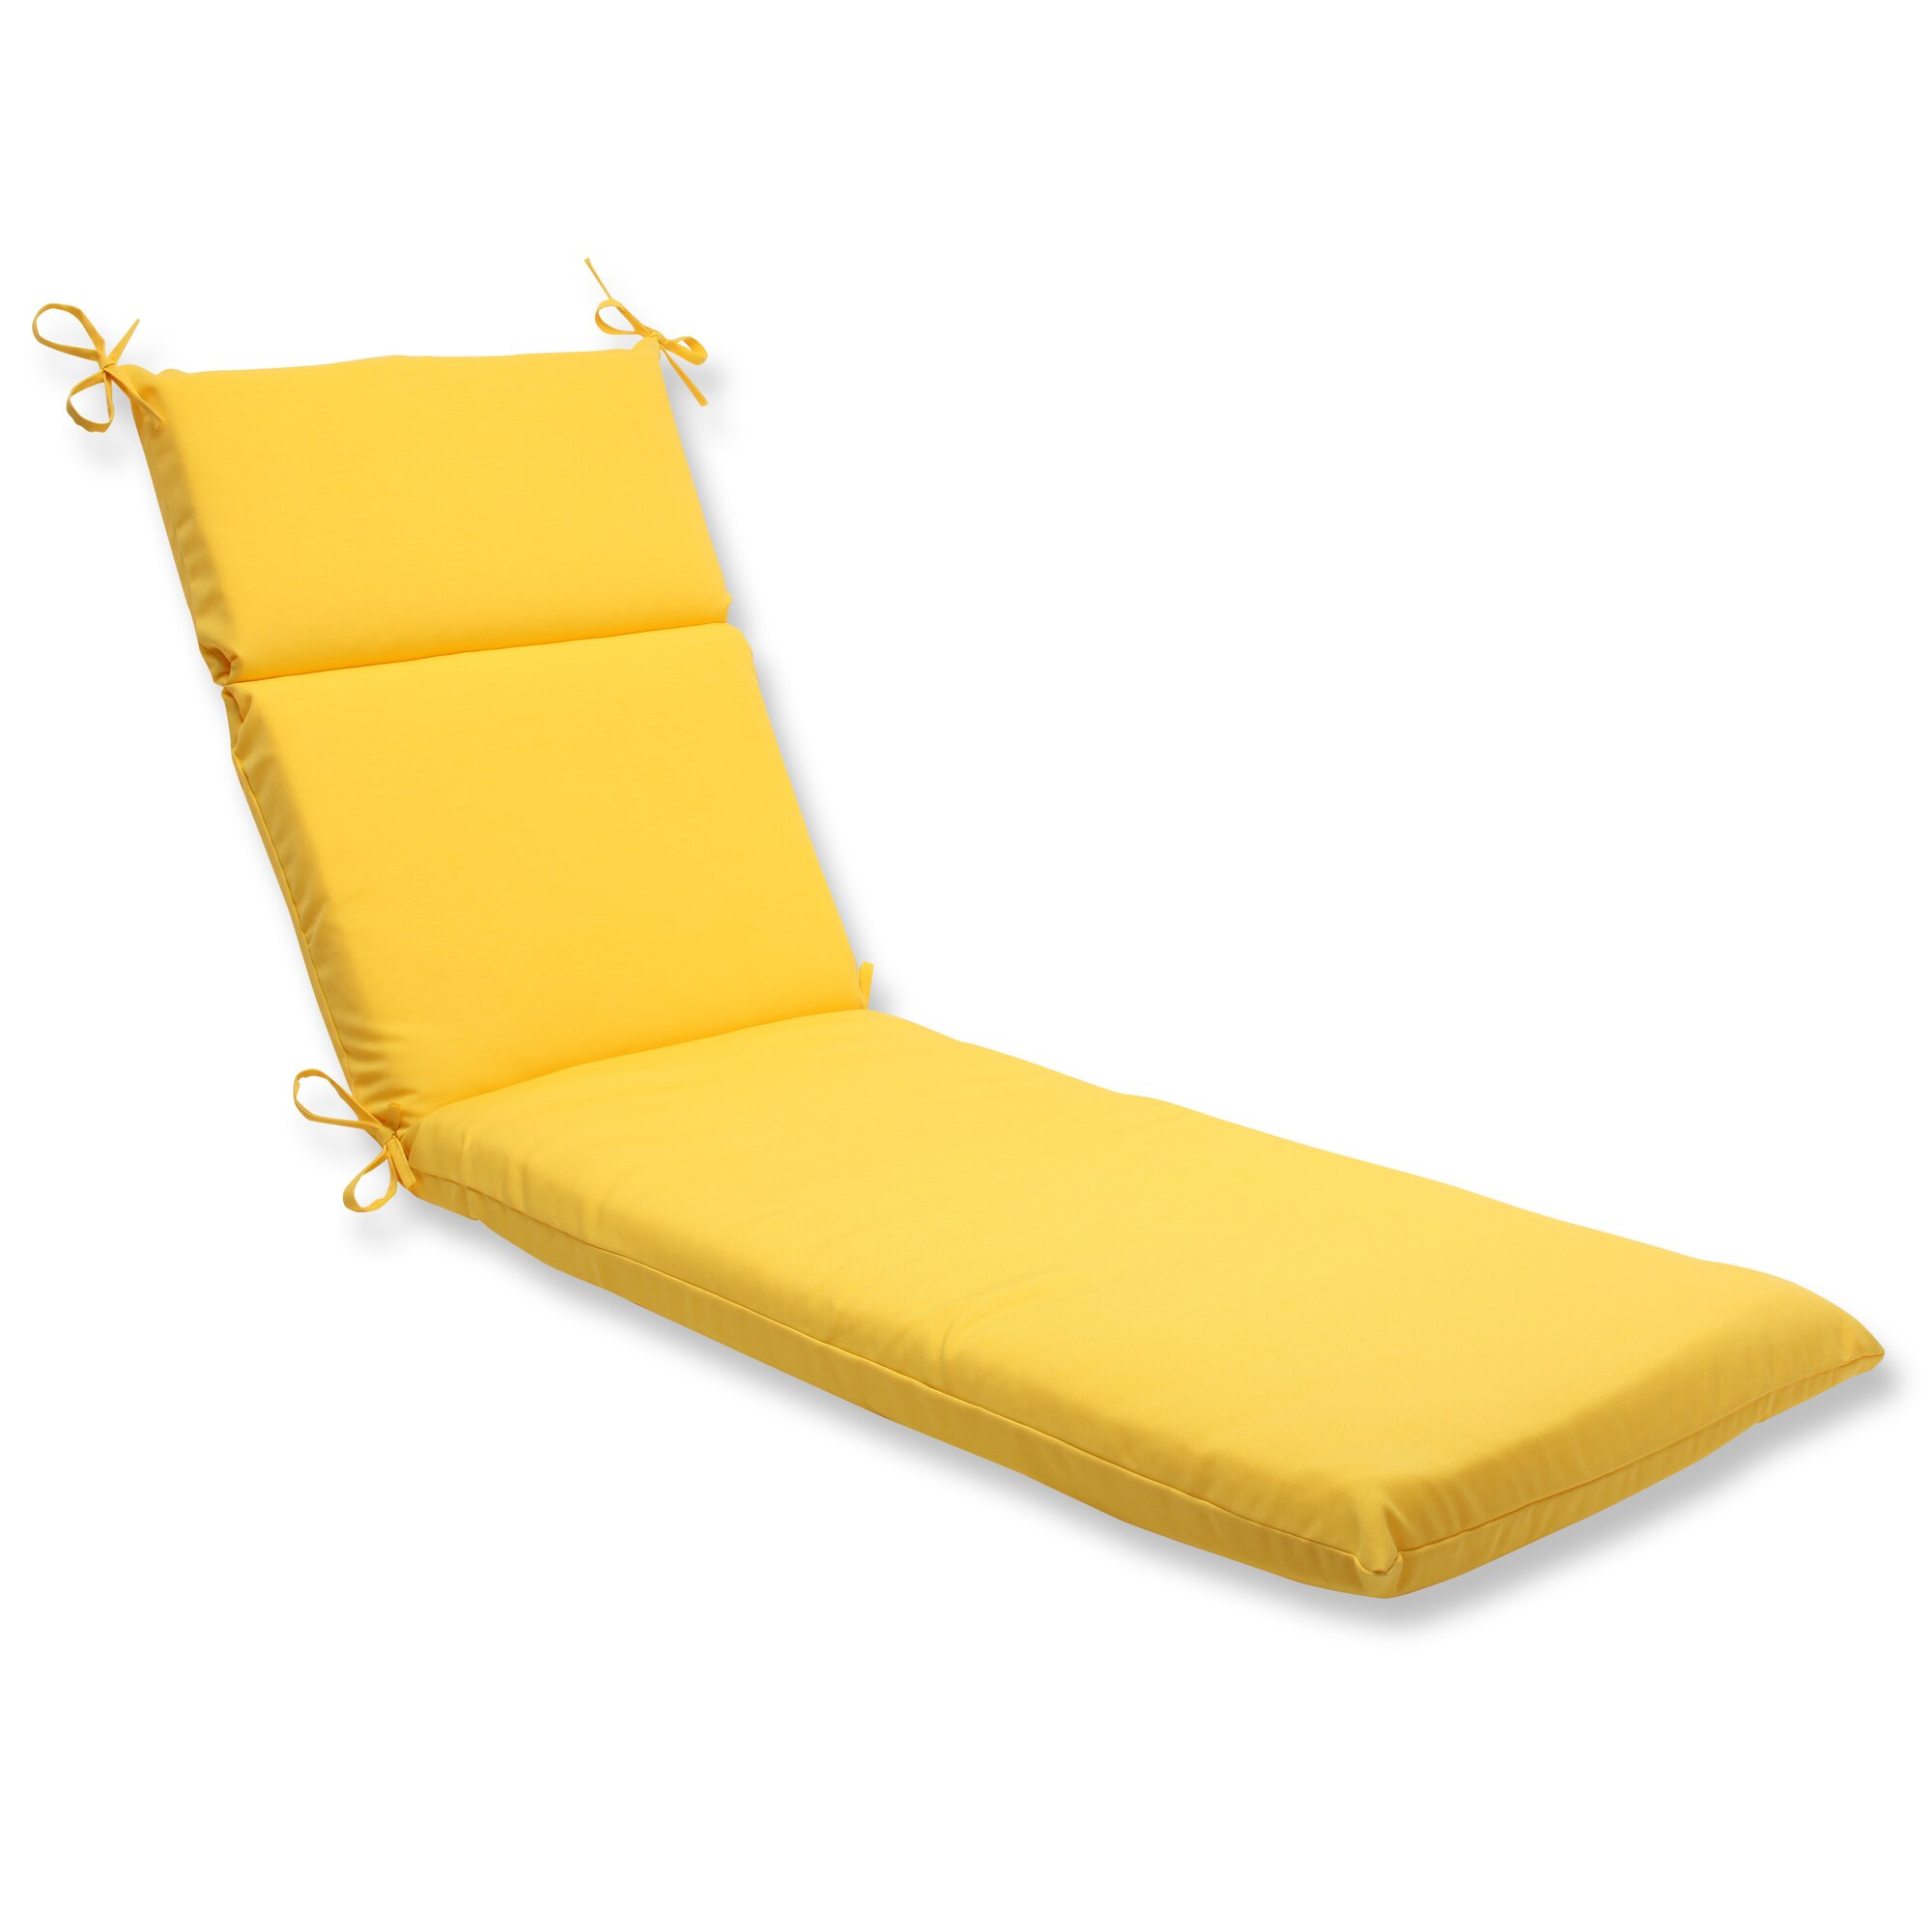 Pillow perfect fresco outdoor chaise lounge cushion for 23 w outdoor cushion for chaise